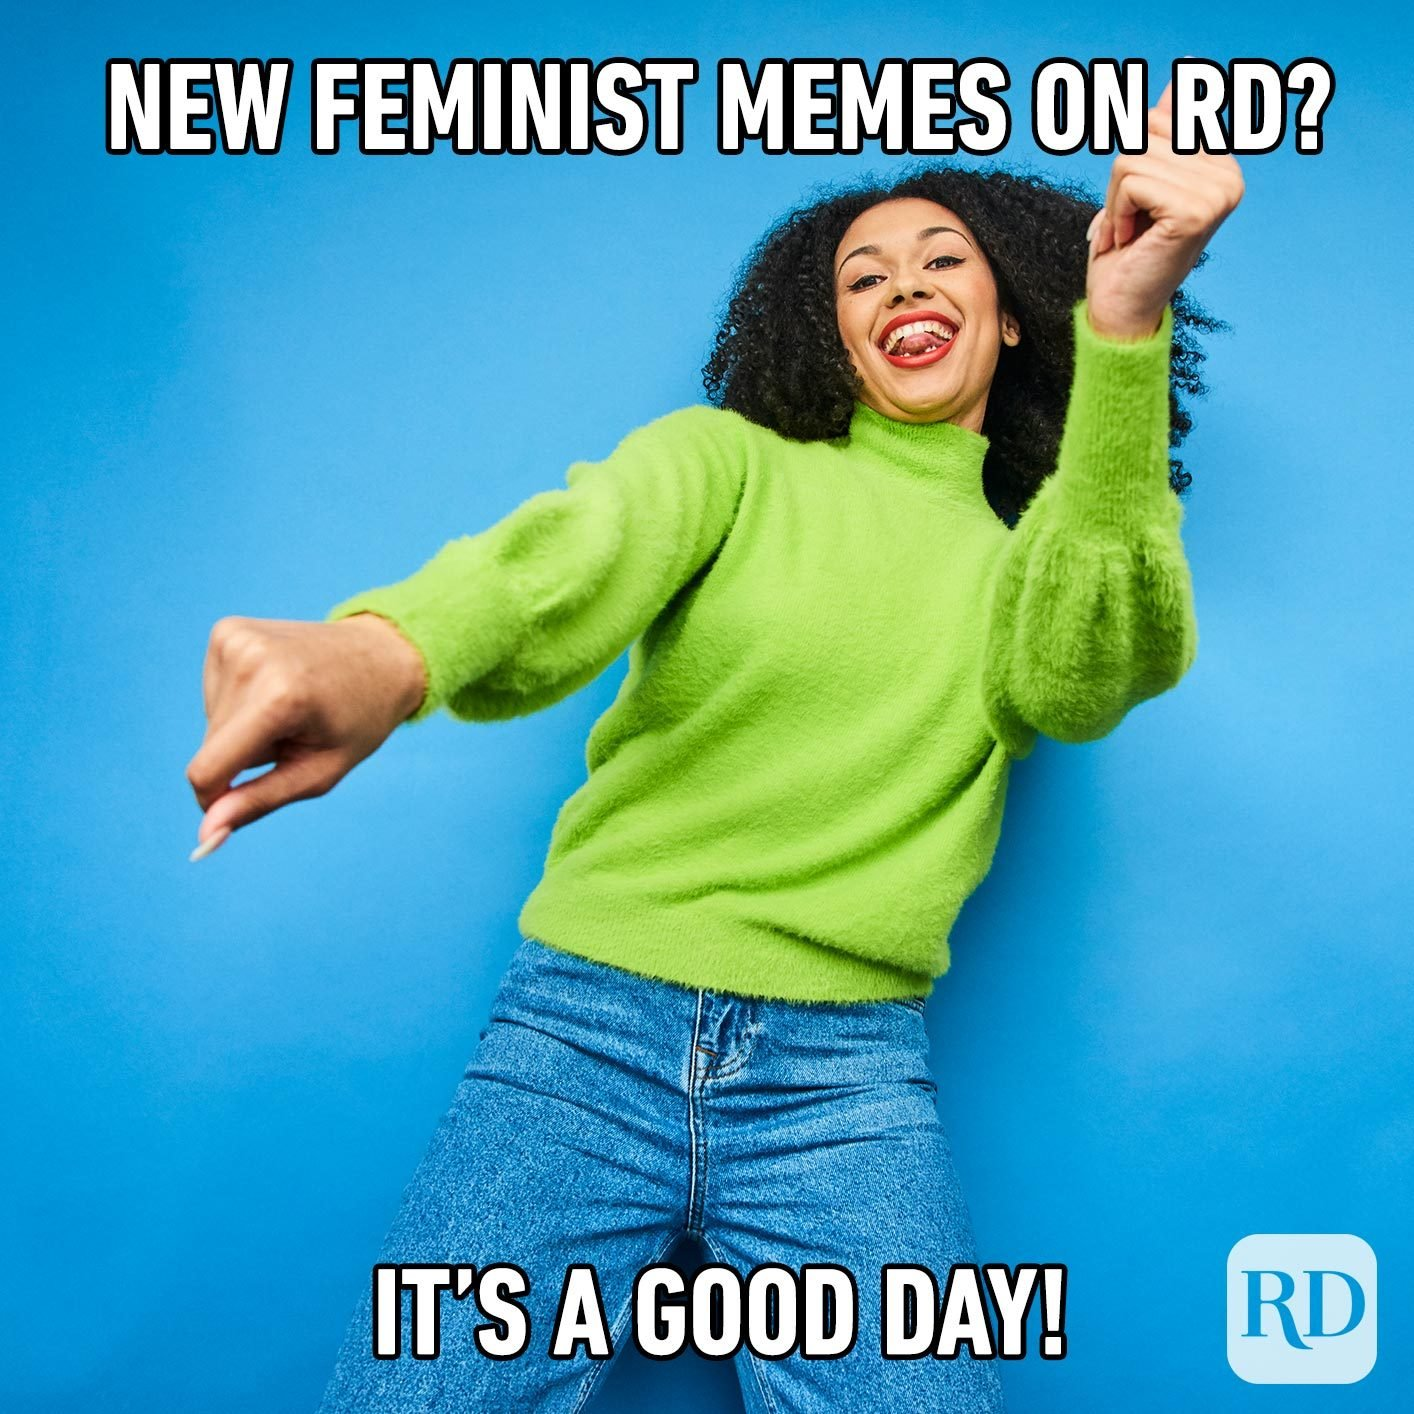 Dancing woman. Meme text: New feminist memes on RD? It's a good day!